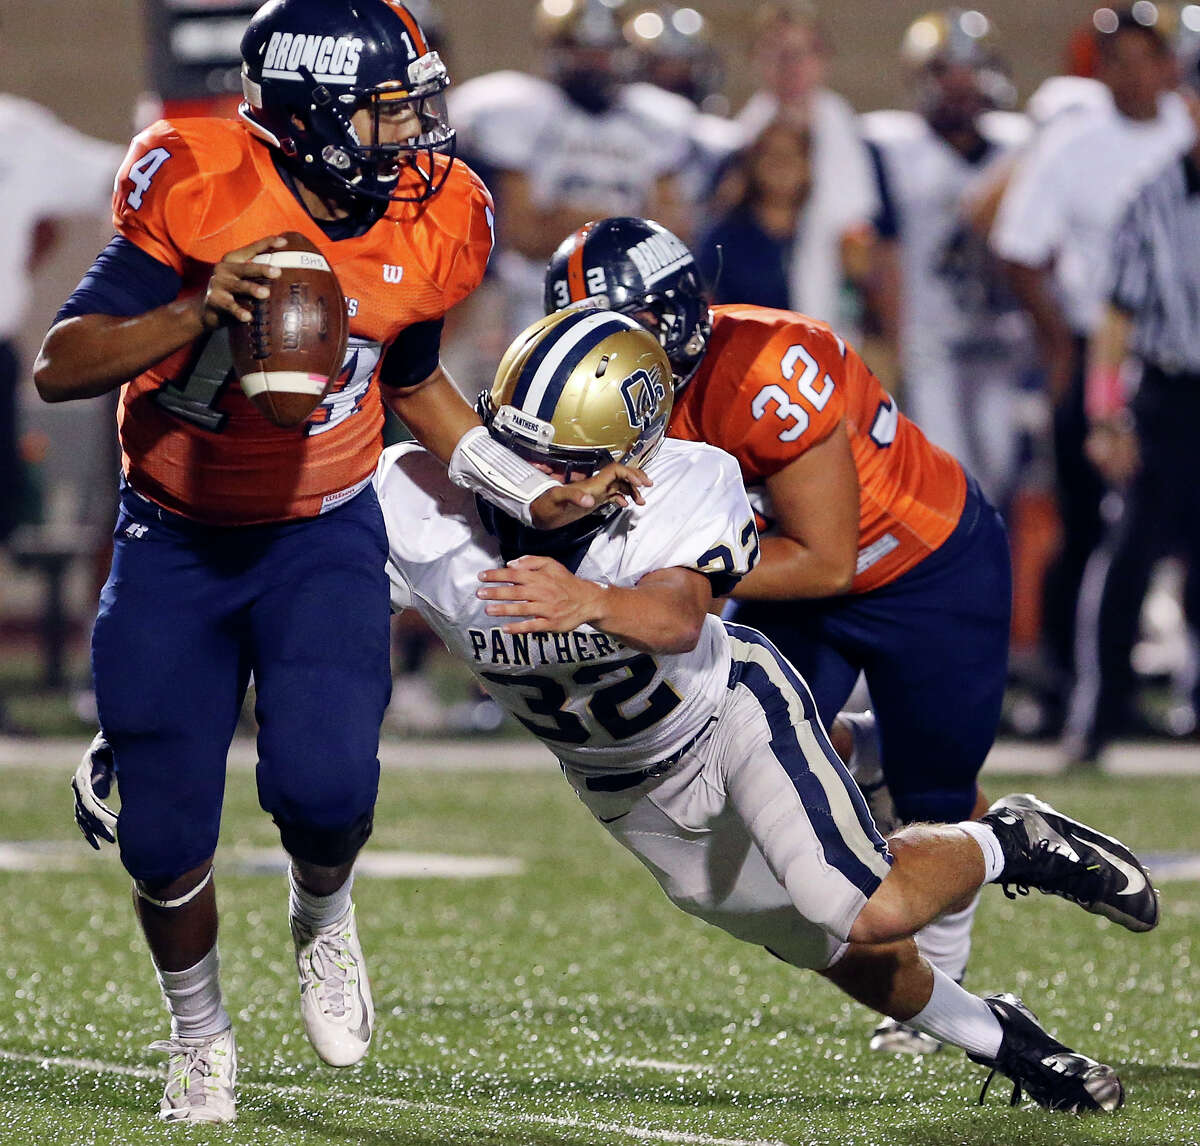 Brandeis' Paul Lozano looks for running room around O'Connor's Darren Jasso during first half action Friday Oct. 24, 2014 at Farris Stadium. Lozano was sacked on the play.